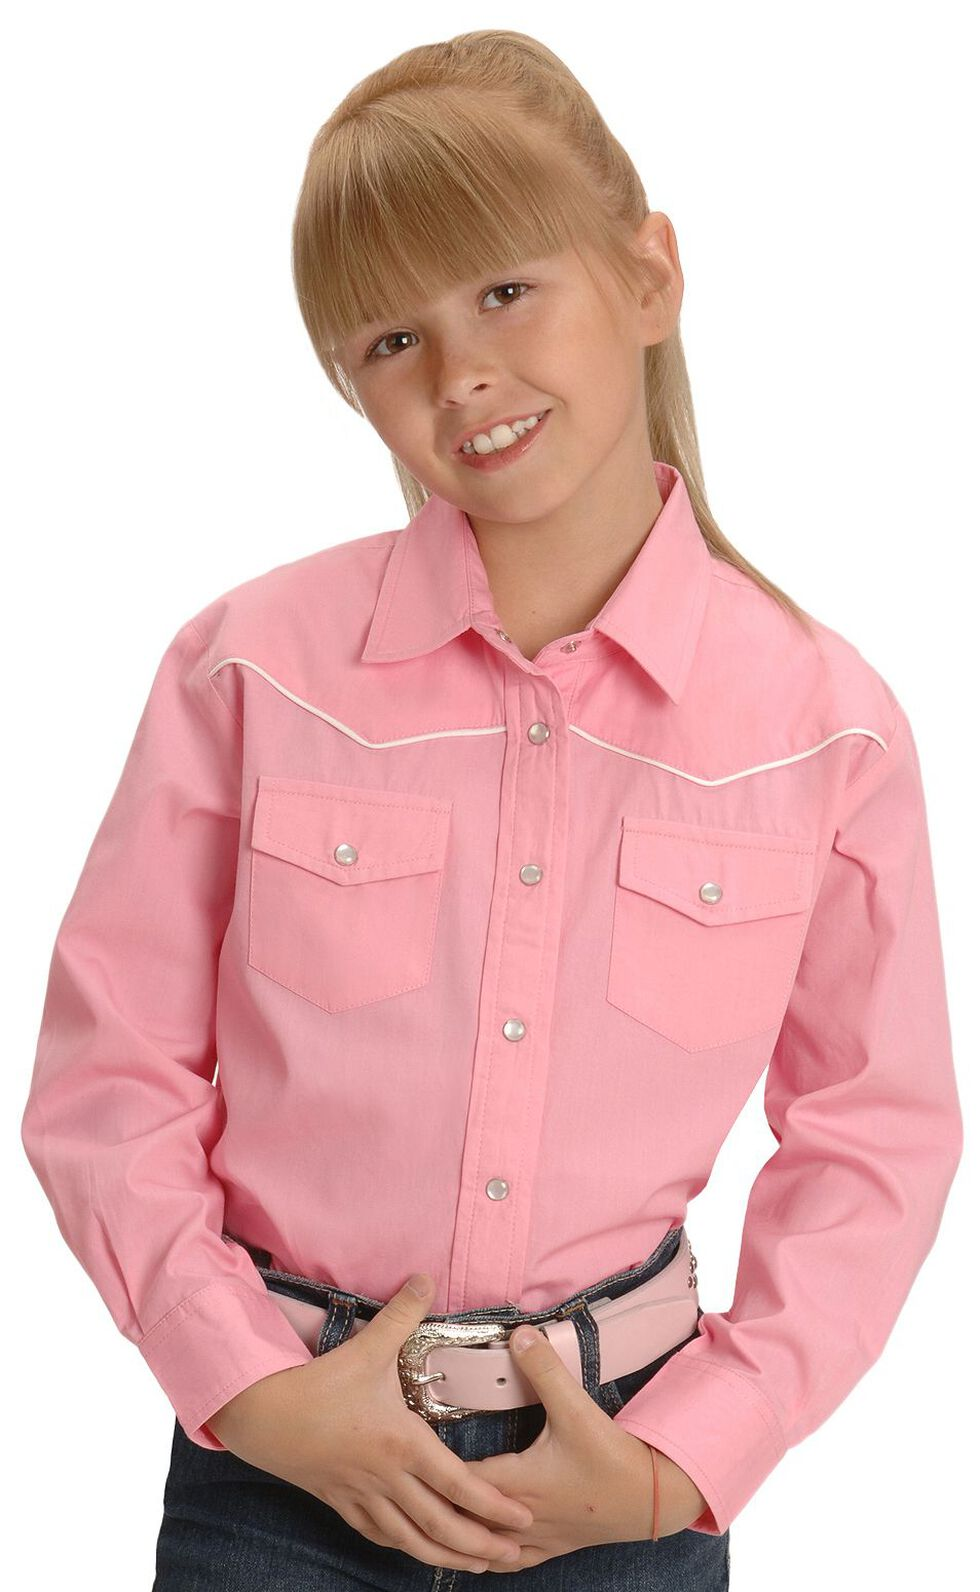 Cumberland Outfitters Girls' Pink Western Shirt - 4-16, Pink, hi-res